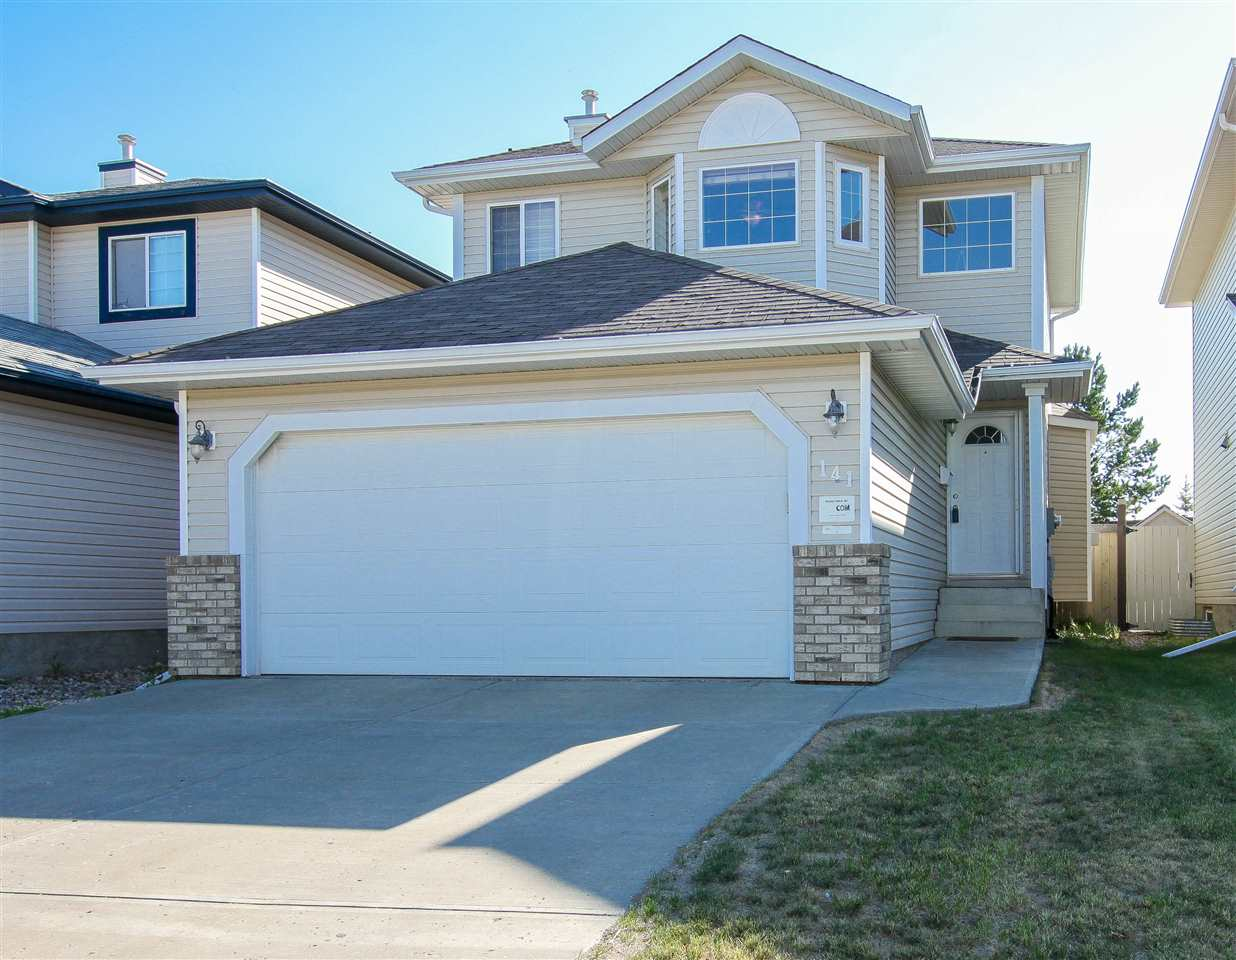 Main Photo: 141 Crocus Crescent: Sherwood Park House for sale : MLS®# E4120918